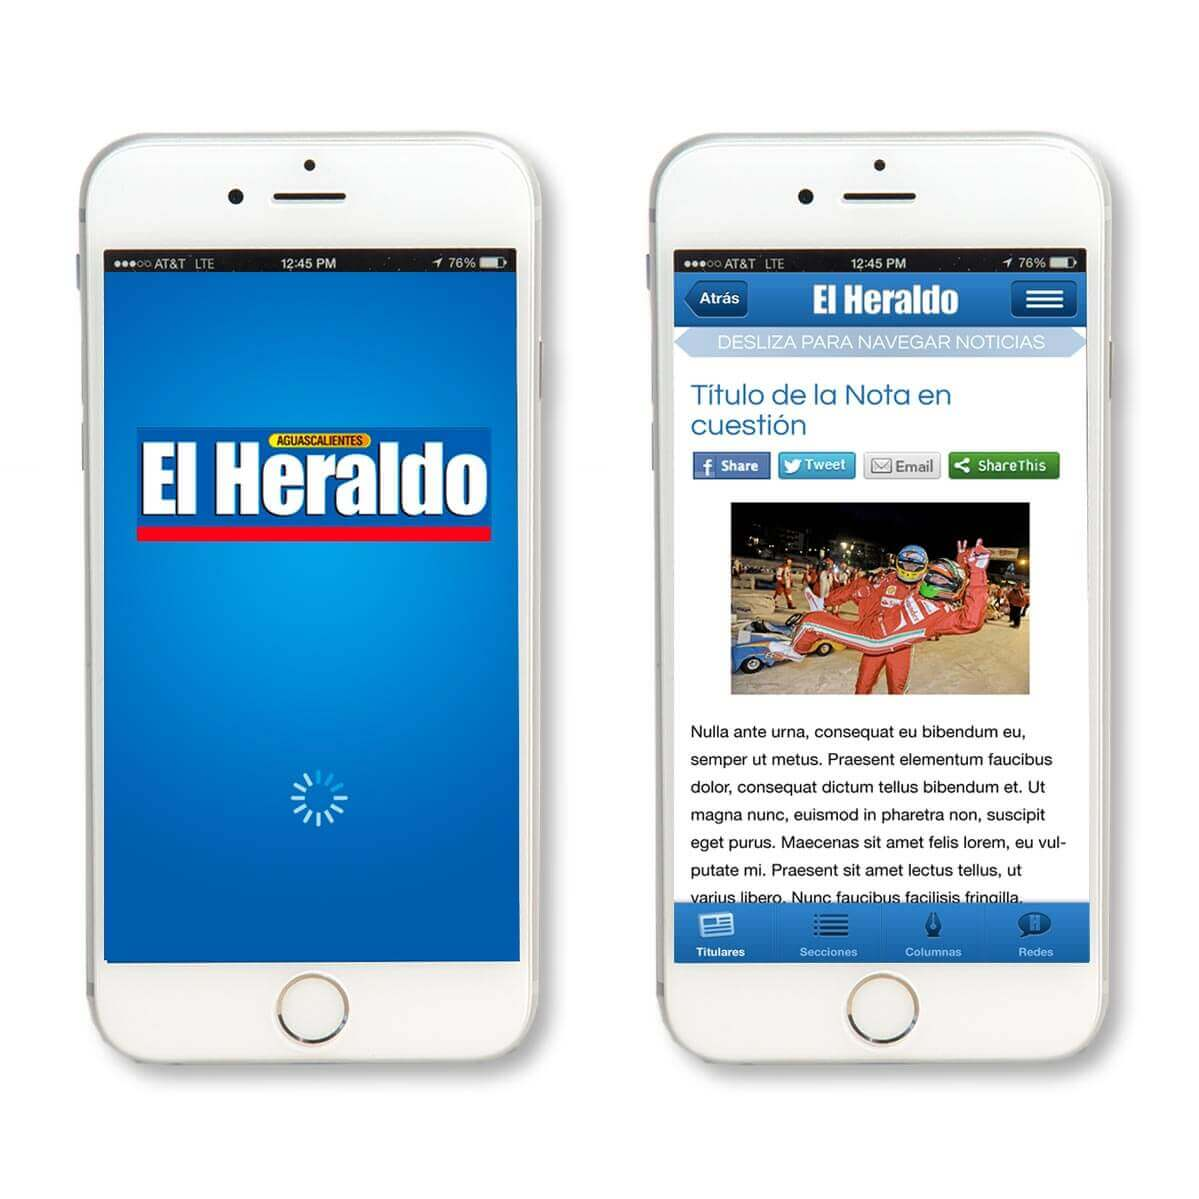 El Heraldo app splash screen and an internal page example